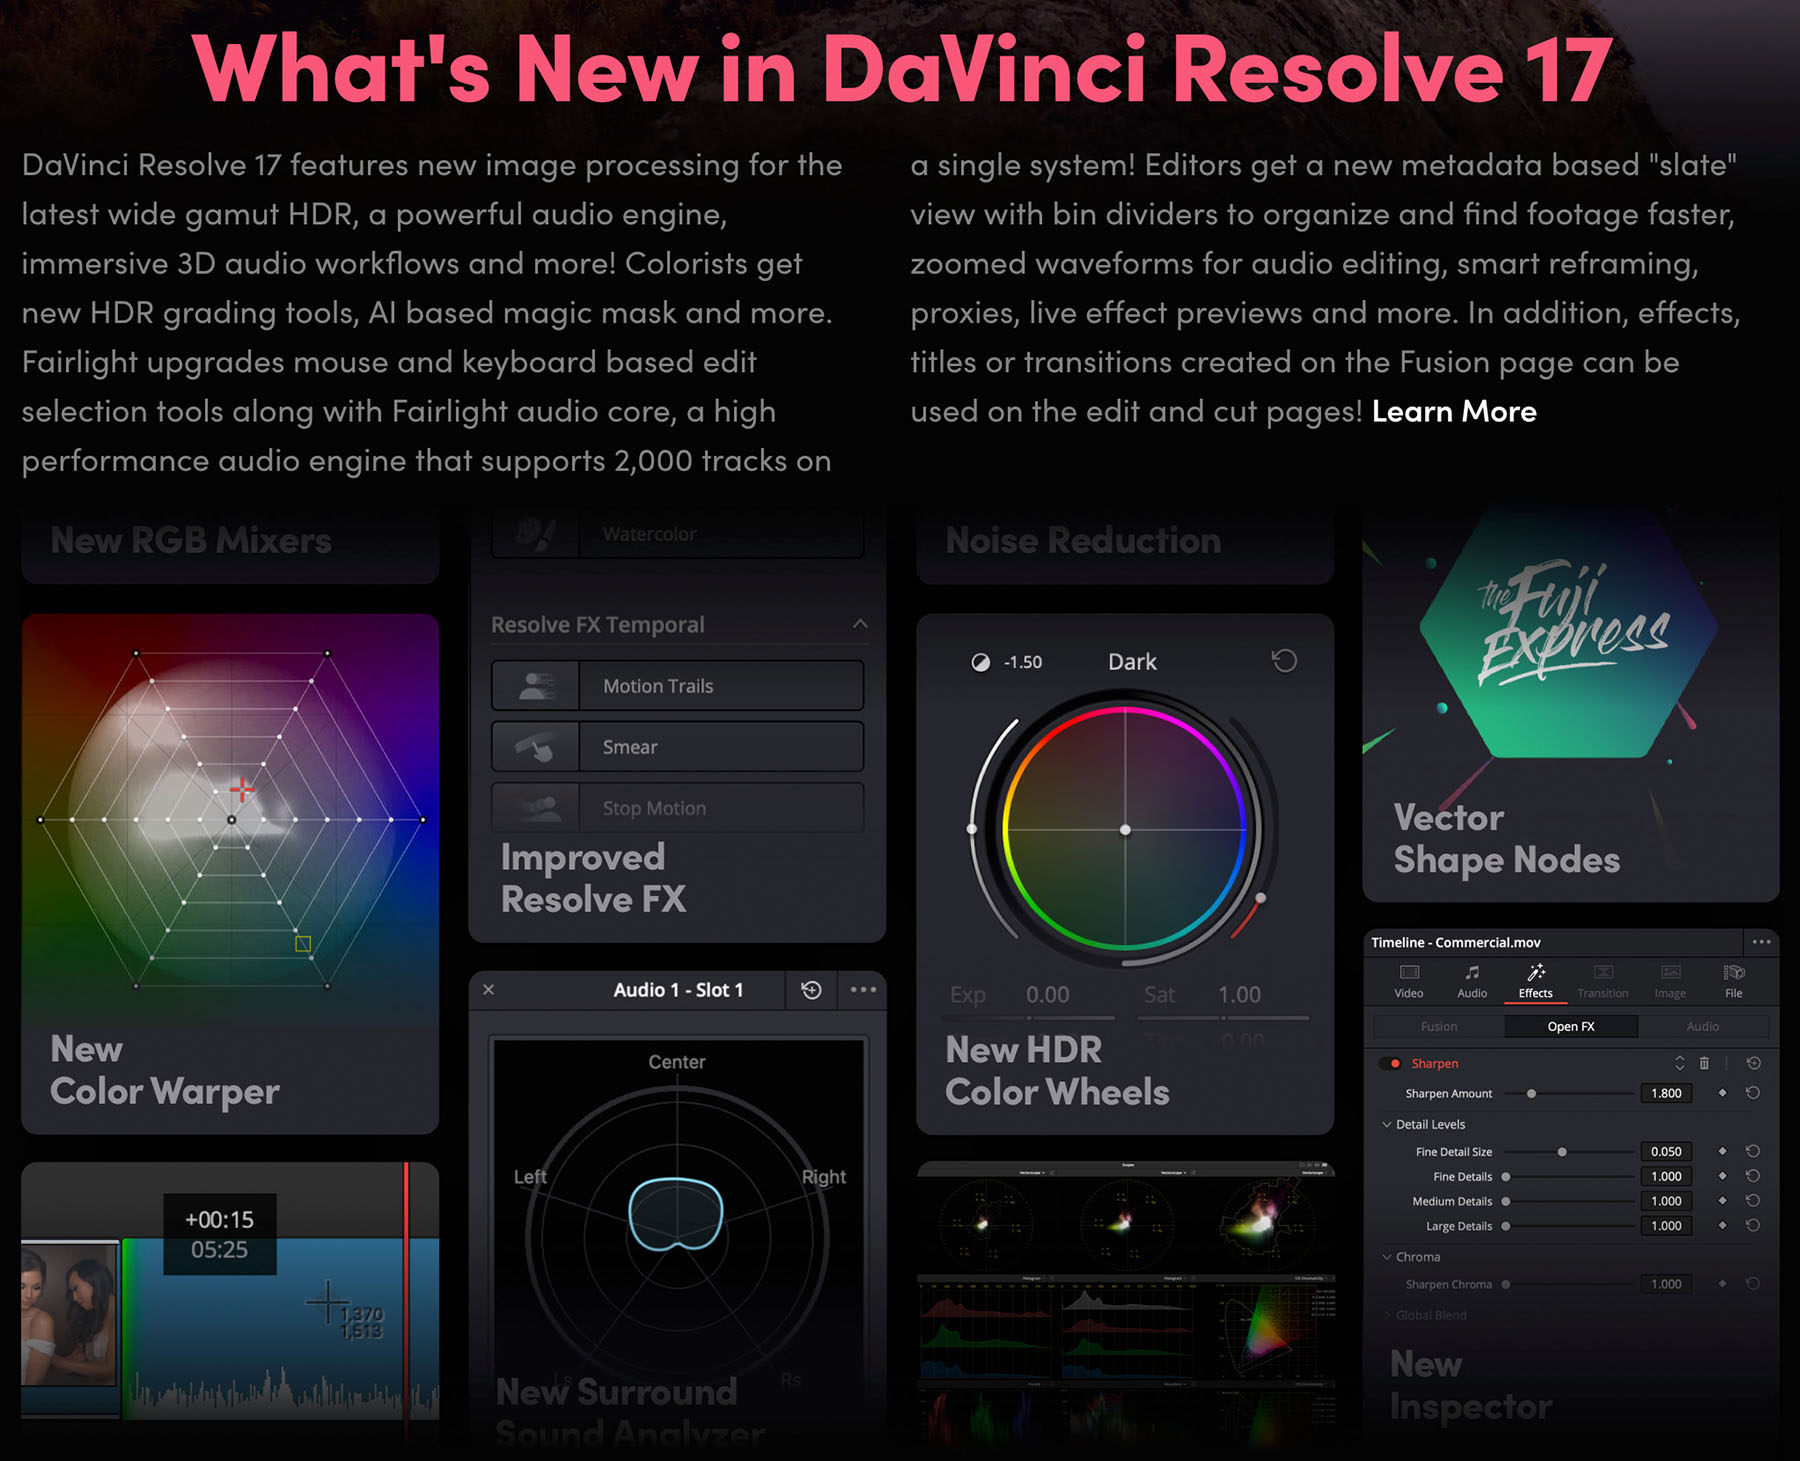 Davinci Resolve 17 Announced Includes Over 300 New Features And Improvements Digital Photography Review